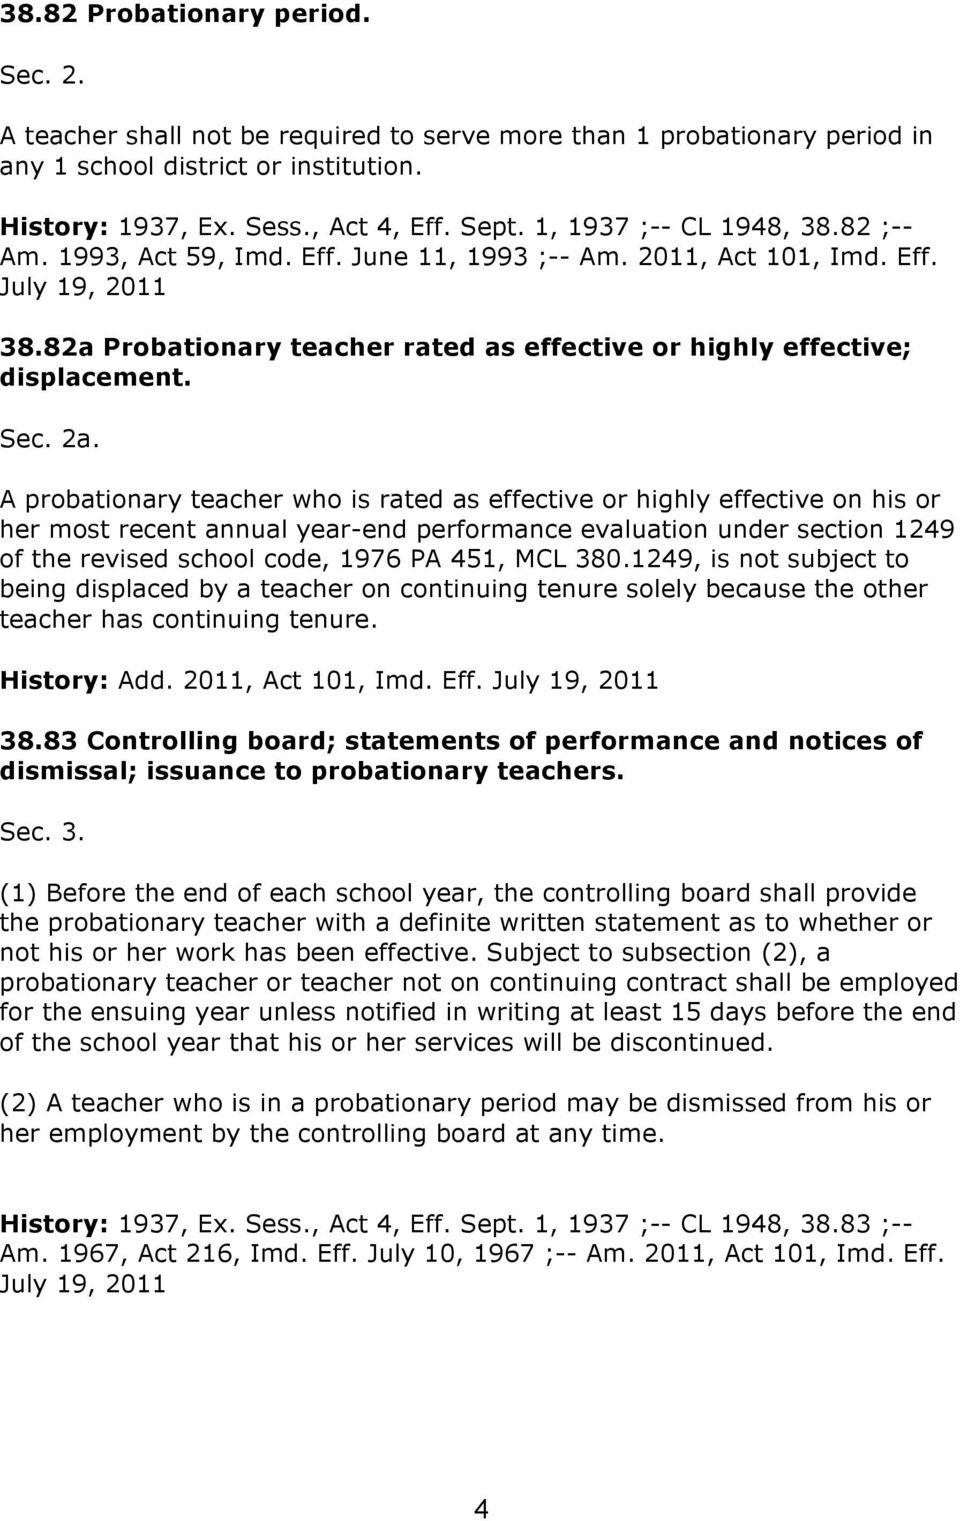 82a Probationary teacher rated as effective or highly effective; displacement. Sec. 2a.